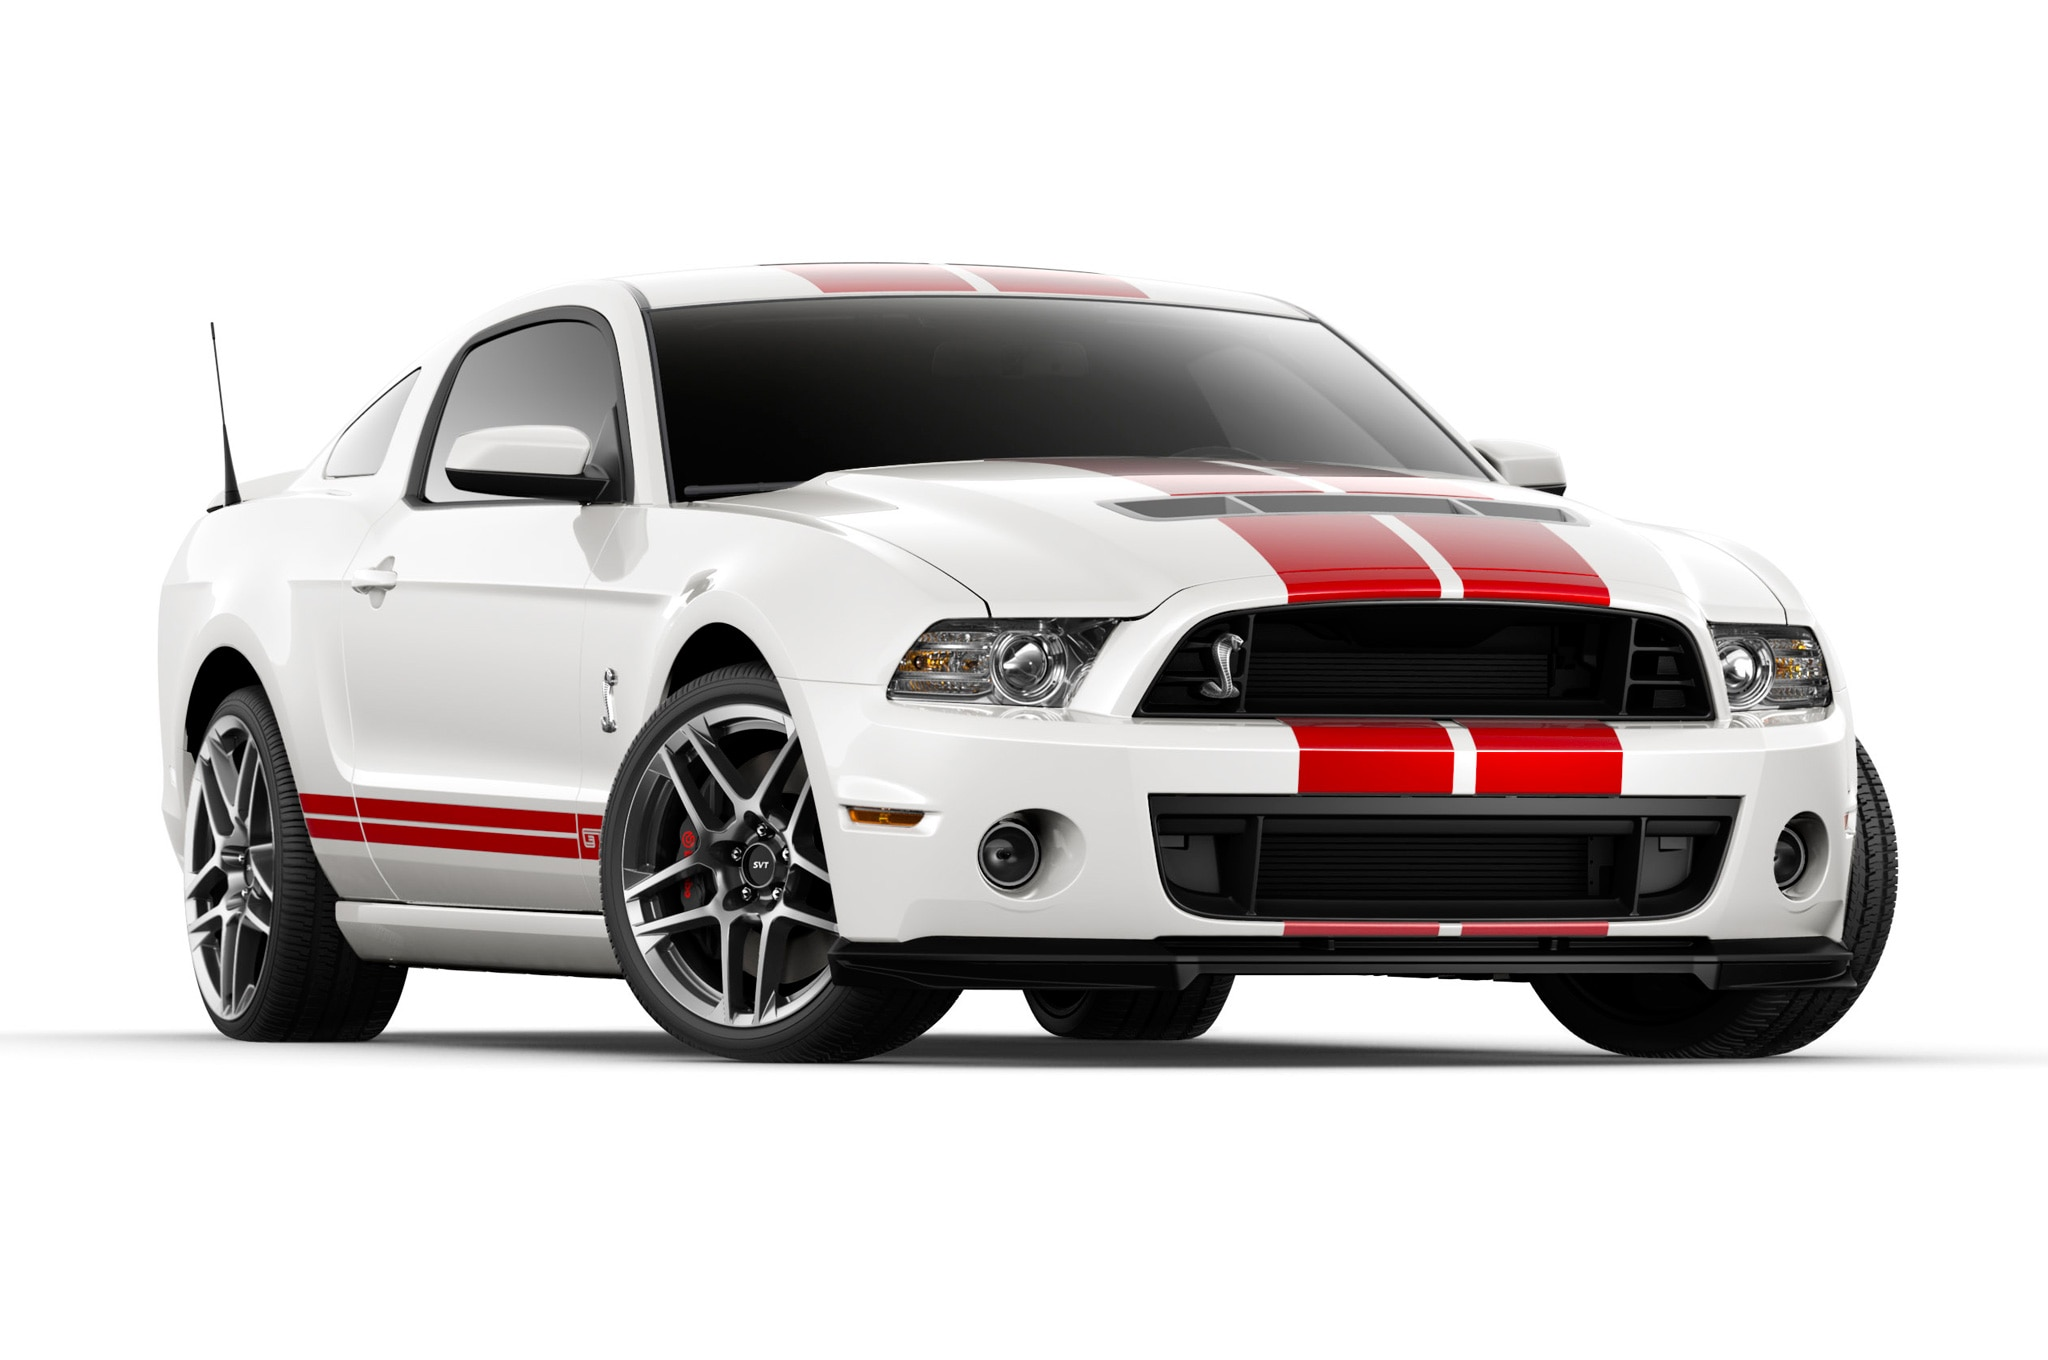 2005 2009 Mustang Gets Shelby Wide Body Kit